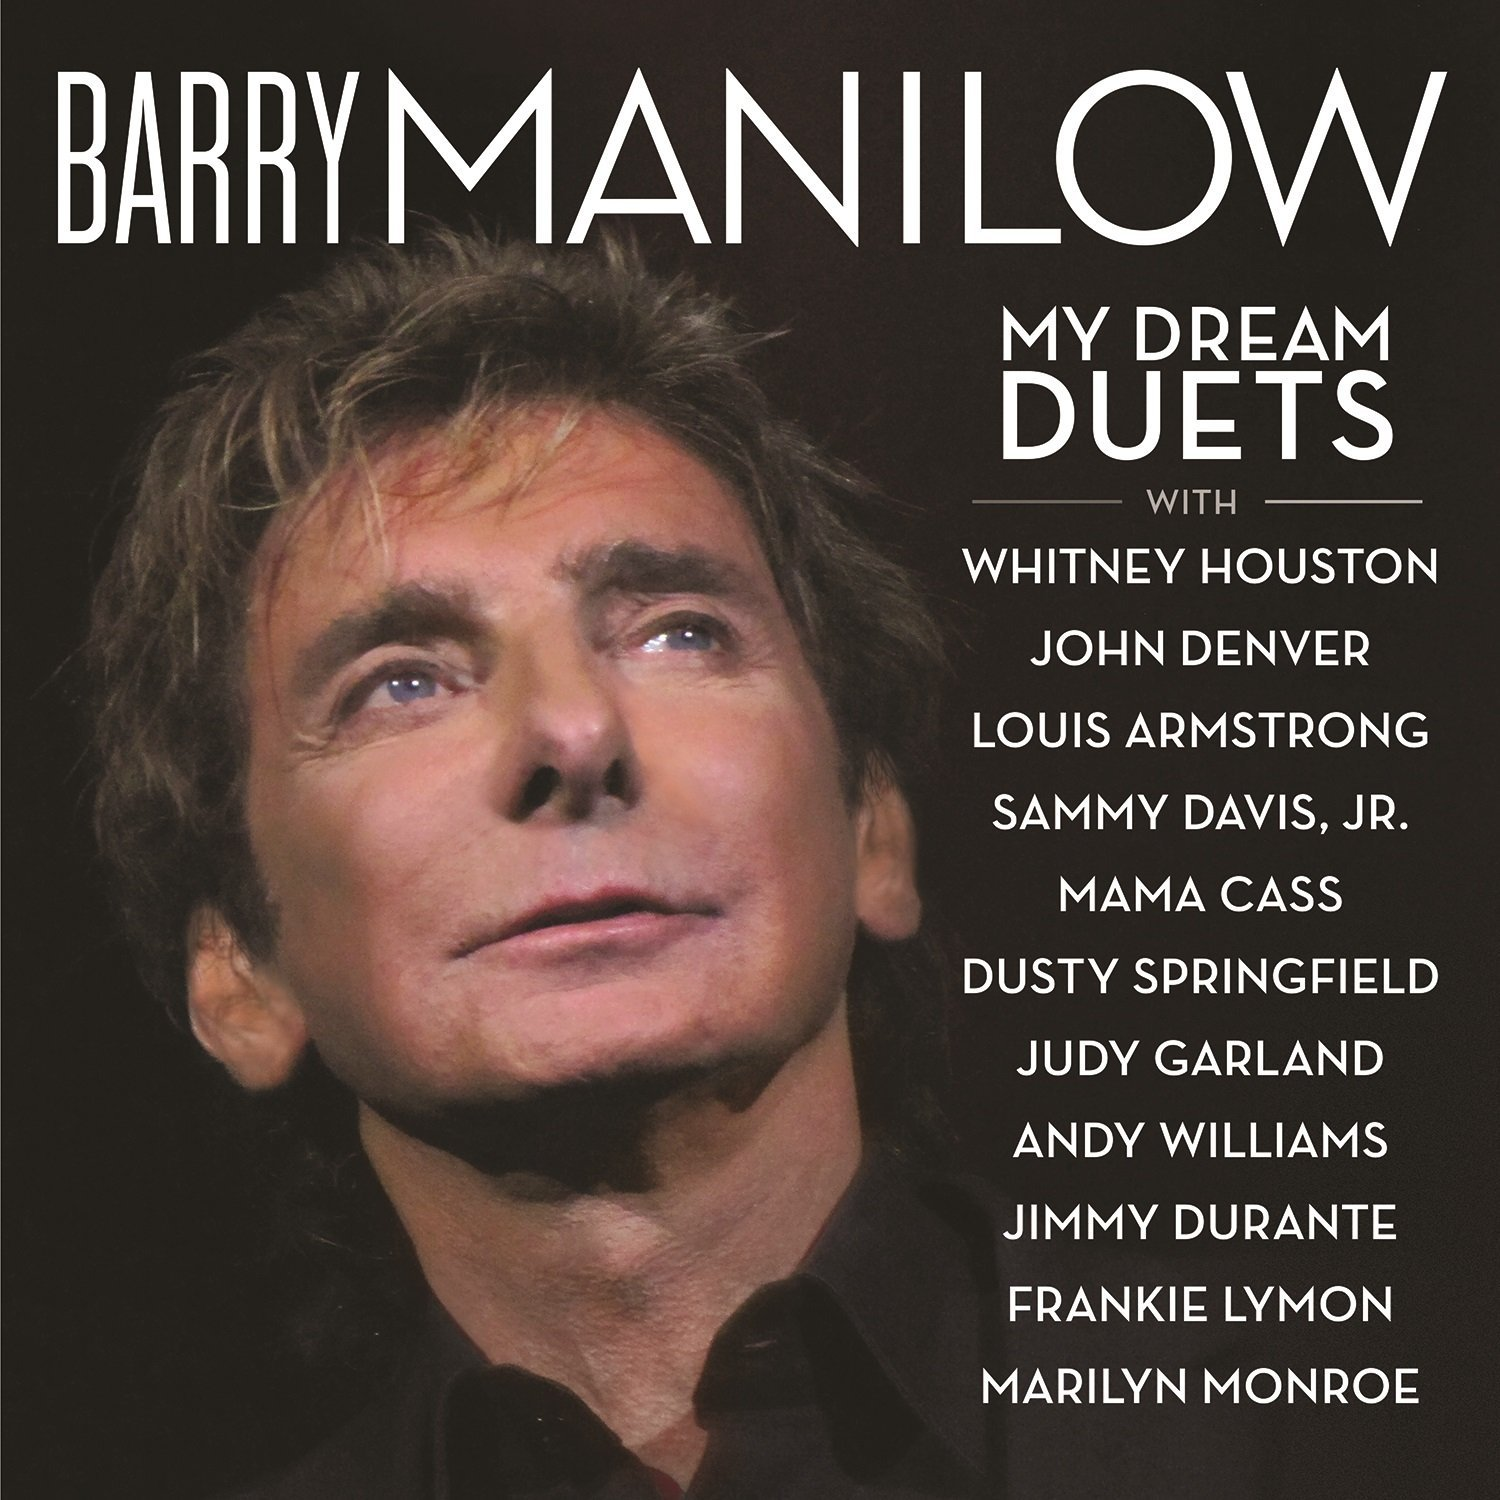 Music – Barry Manilow